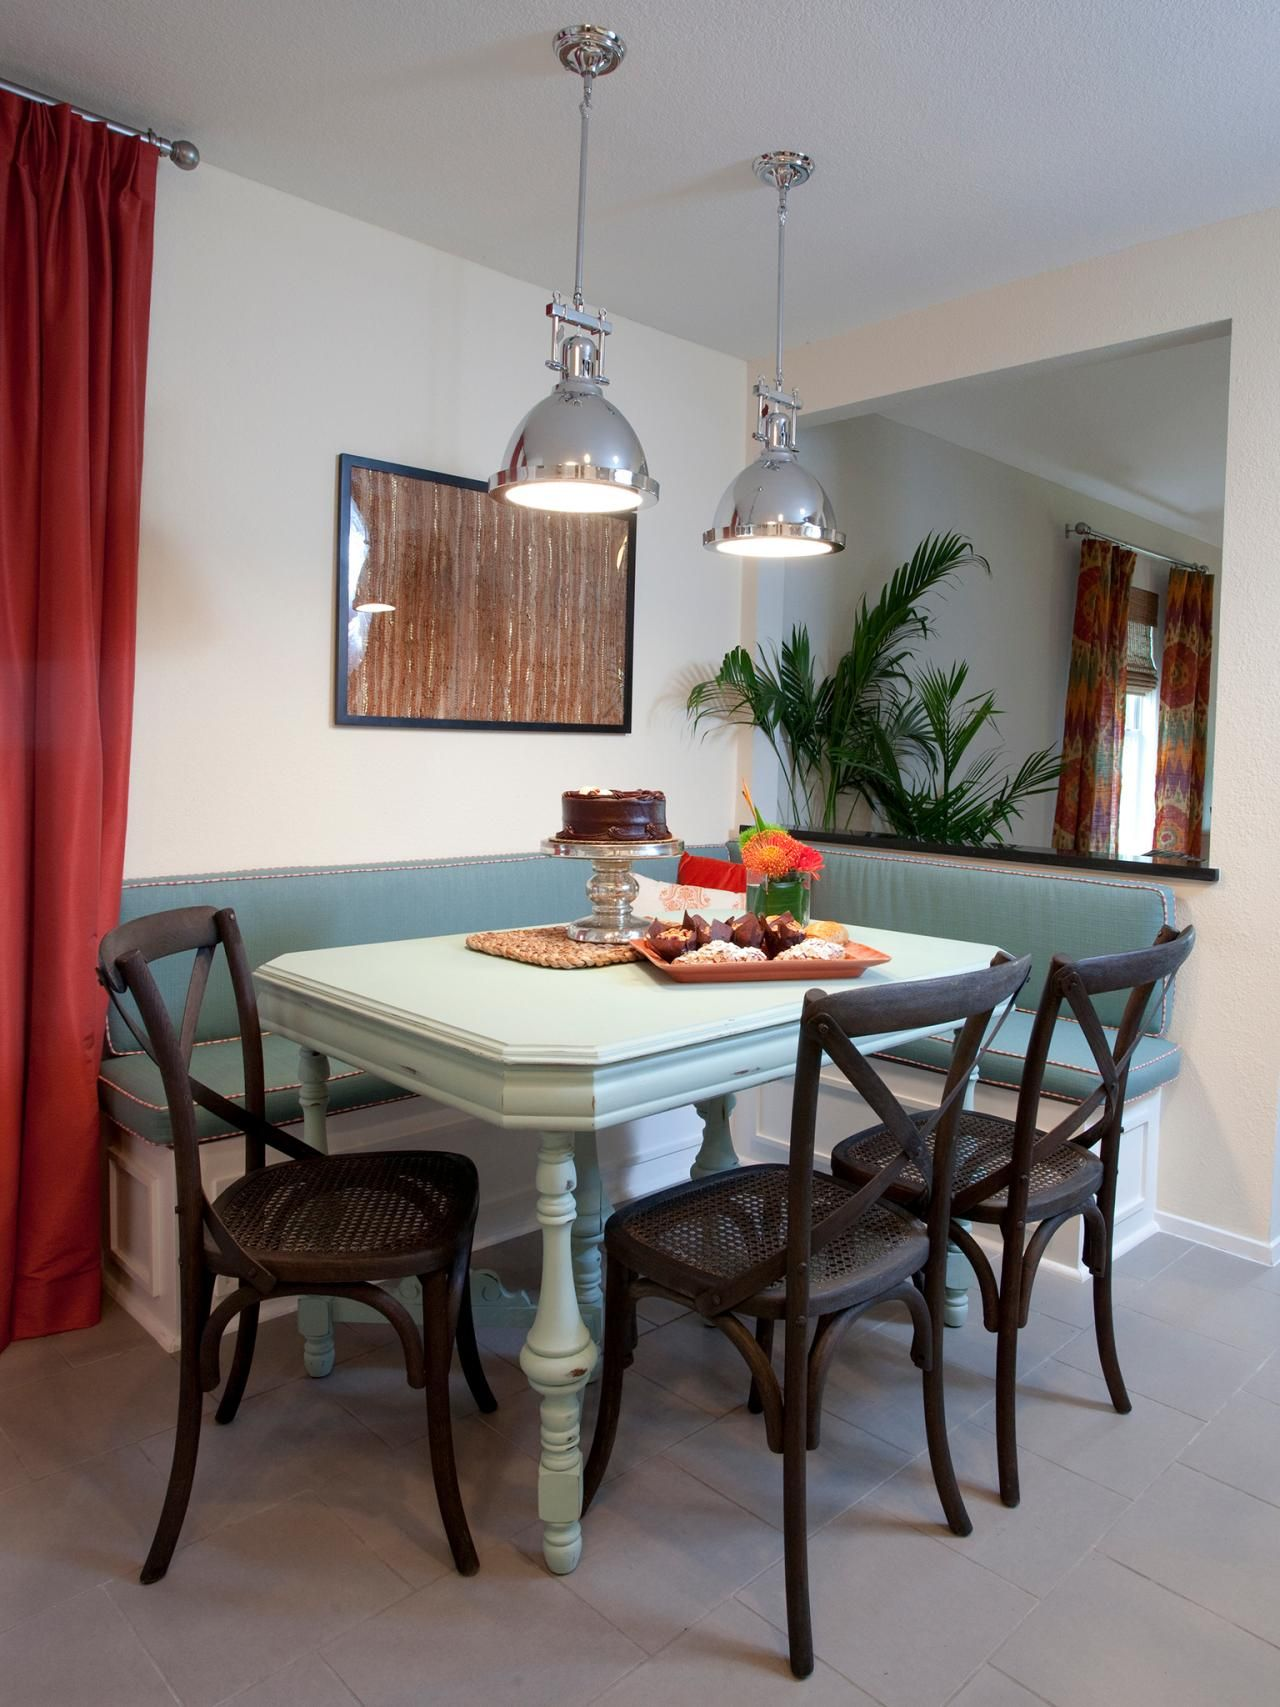 Genial HGTV.com Has Inspirational Pictures And Expert Tips On Small Kitchen Table  Ideas To Help